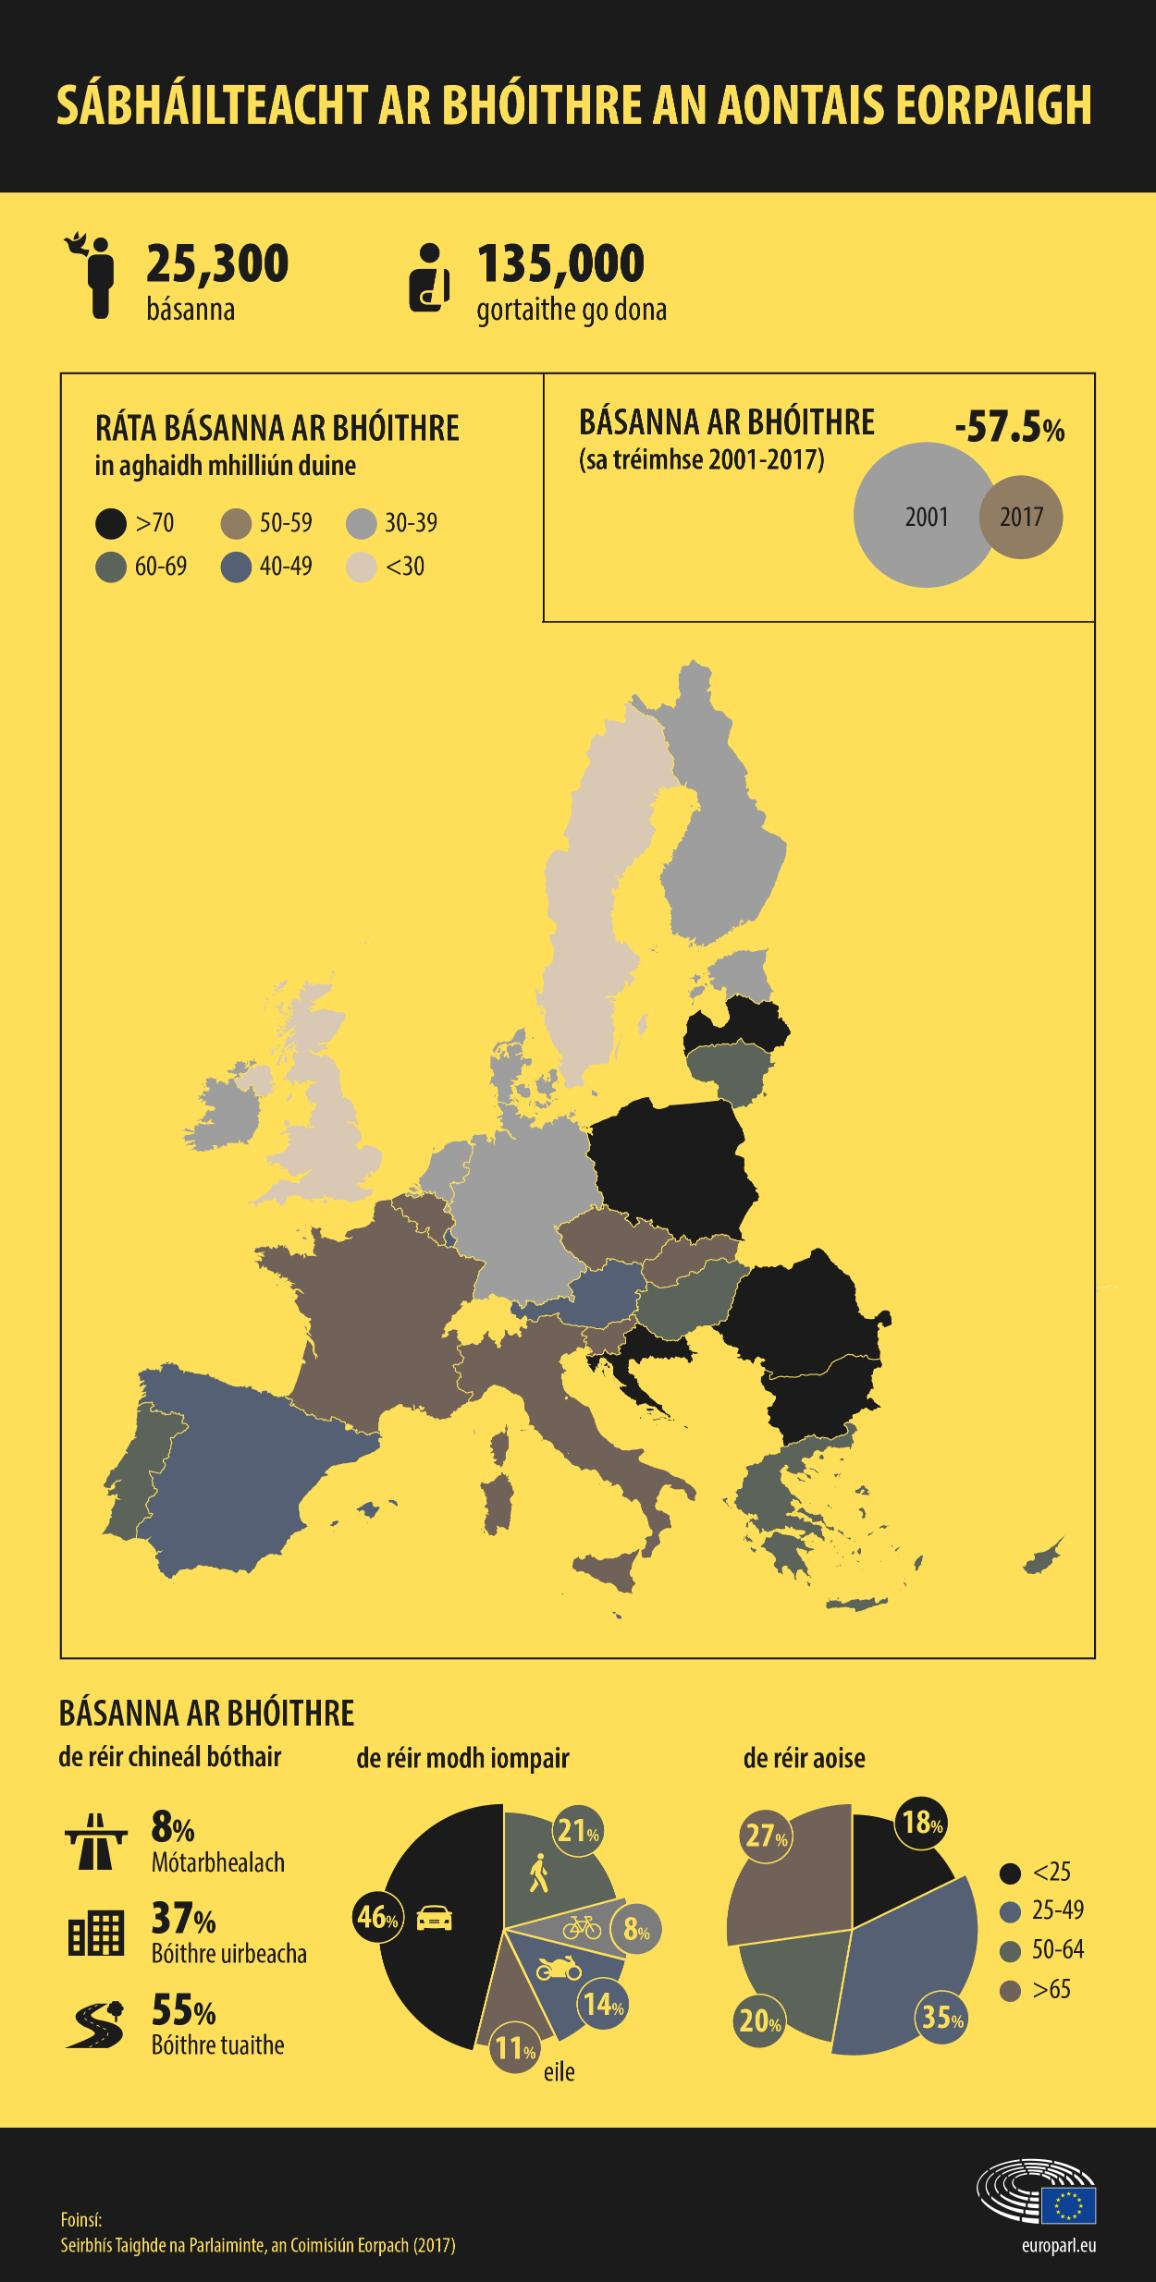 infographic on road safety in the European Union